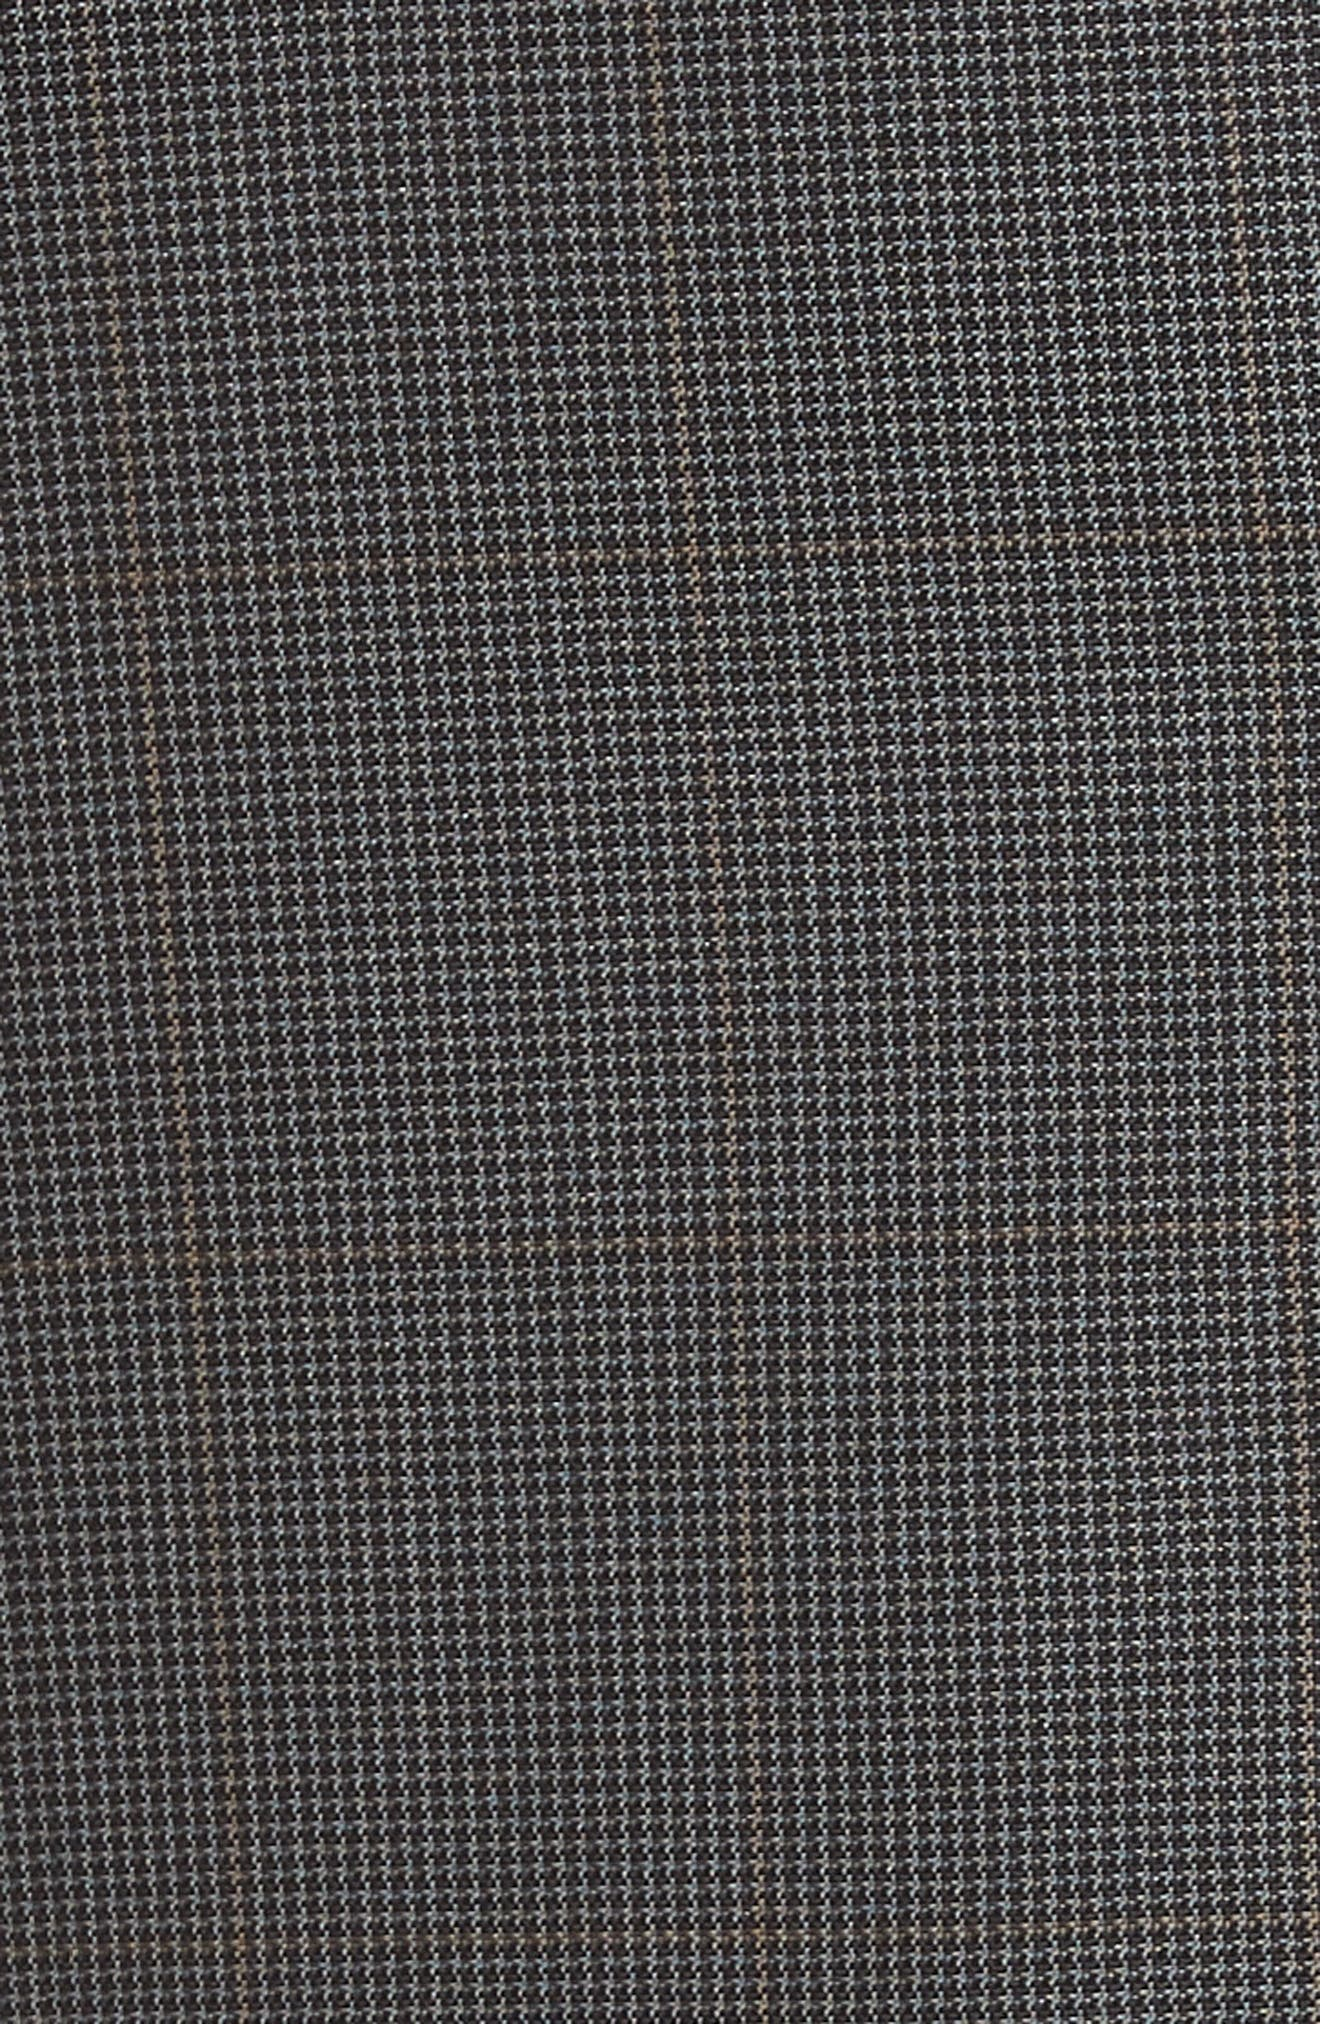 Trim Fit Houndstooth Wool & Silk Suit,                             Alternate thumbnail 6, color,                             026